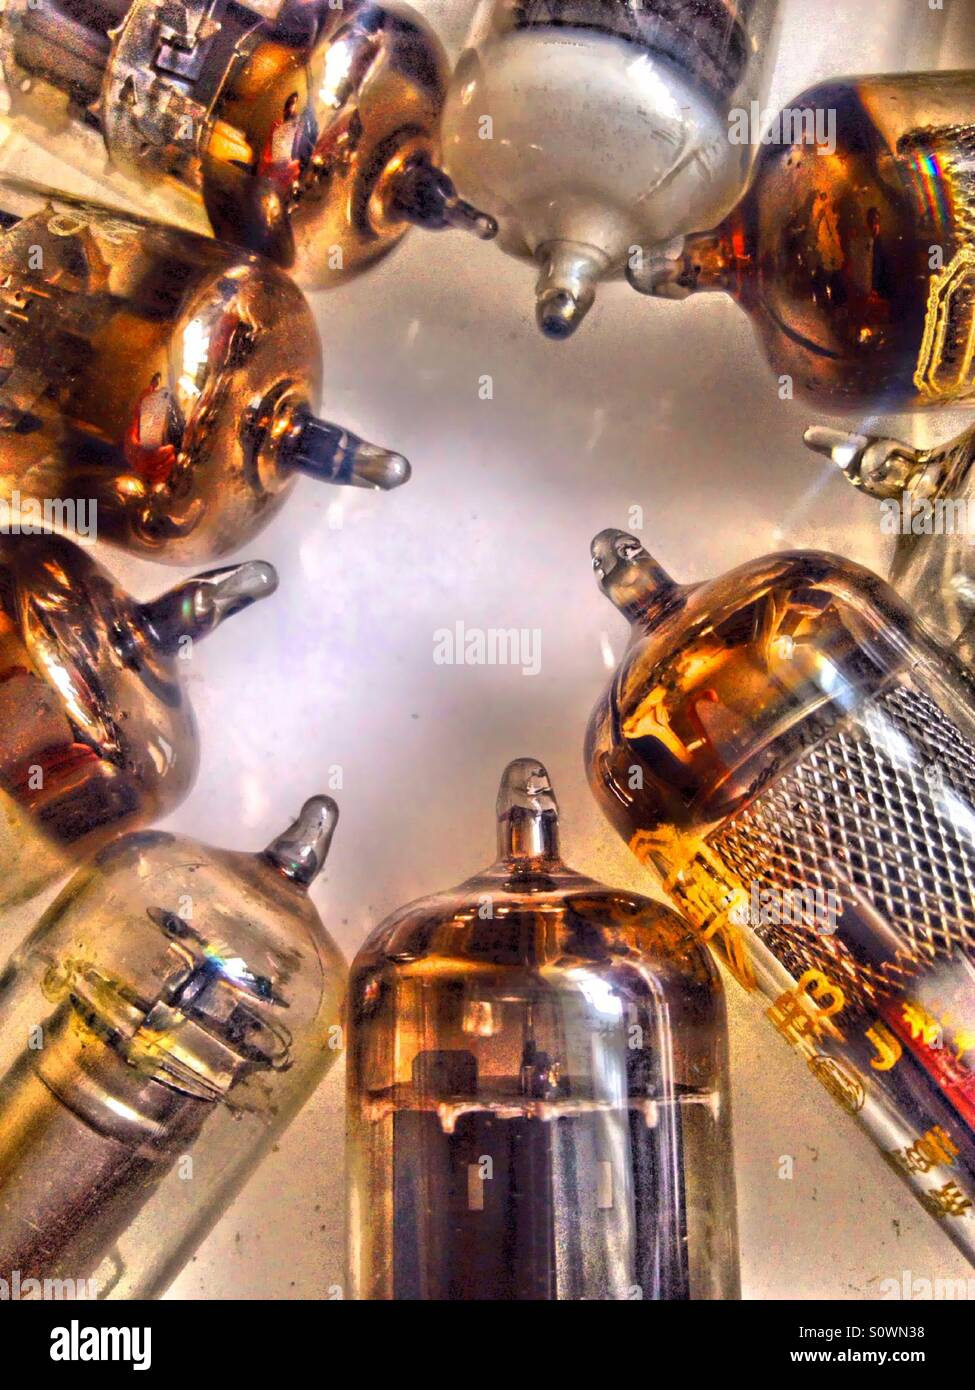 Vintage radio and television valves Stock Photo: 310351980 - Alamy